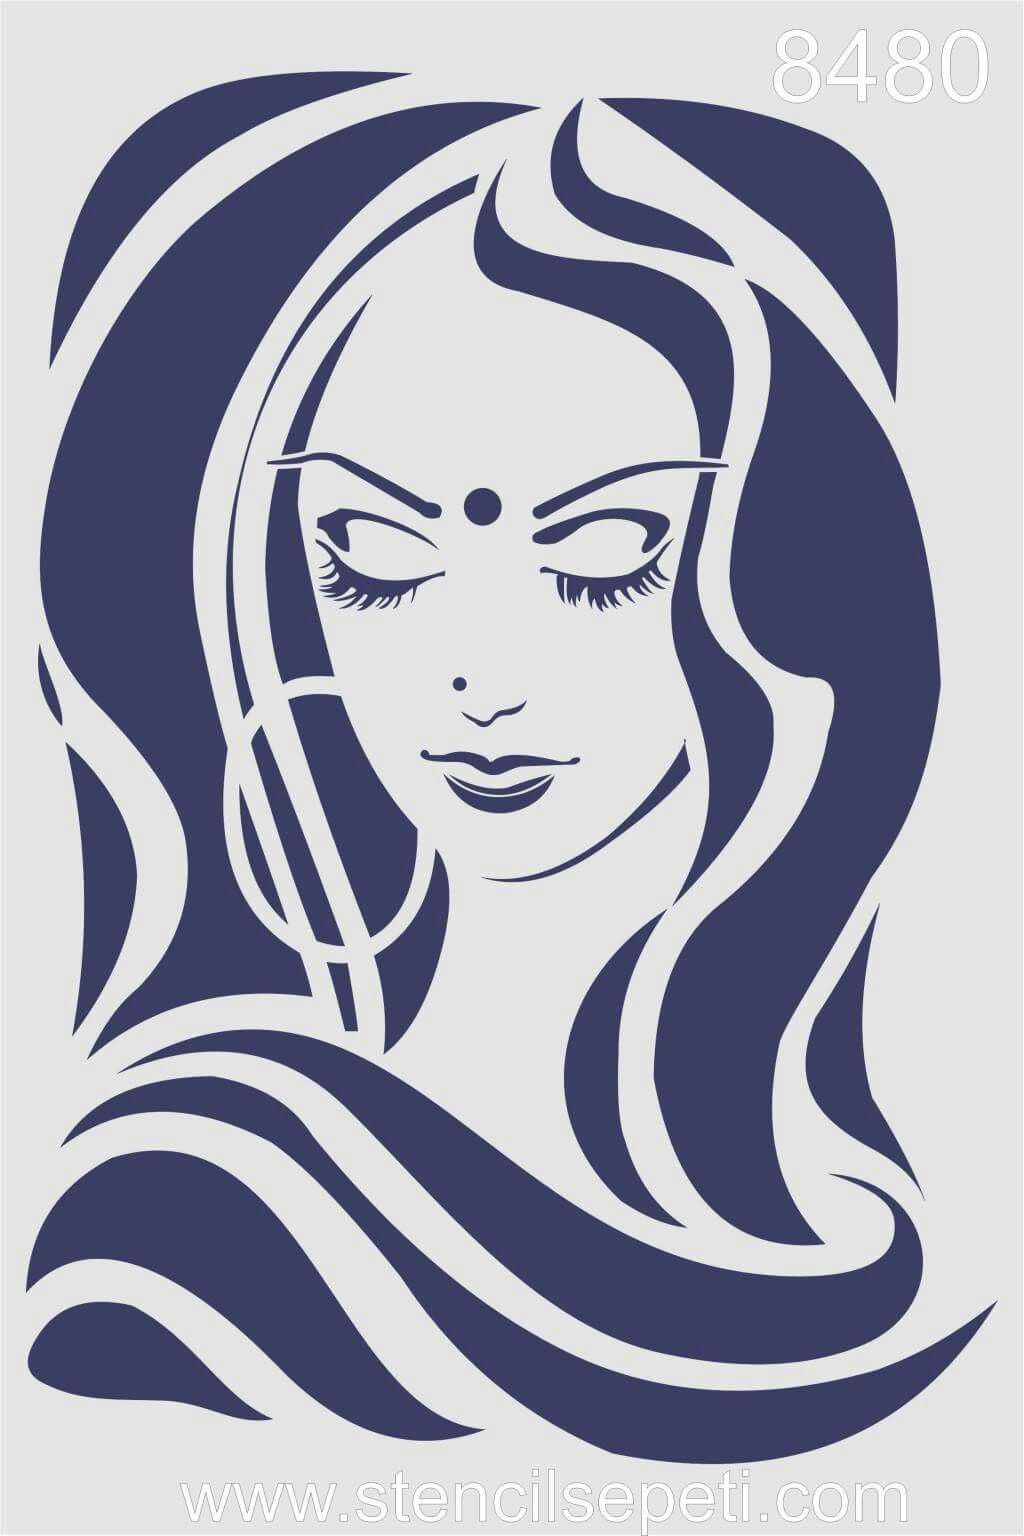 Pin by narendra vakte on art   Pinterest   Stenciling, Silhouettes ...